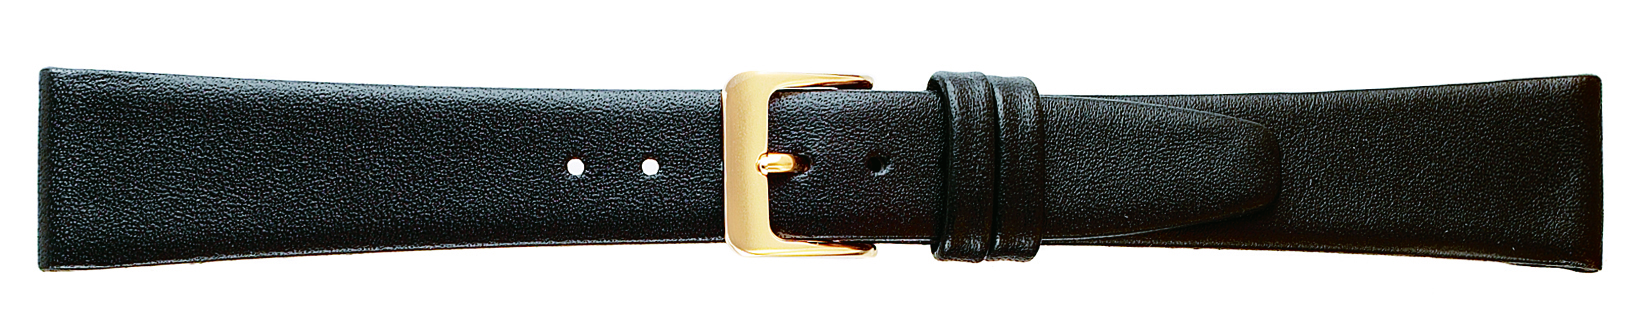 14MM Leather Band Black Smooth Calf-0